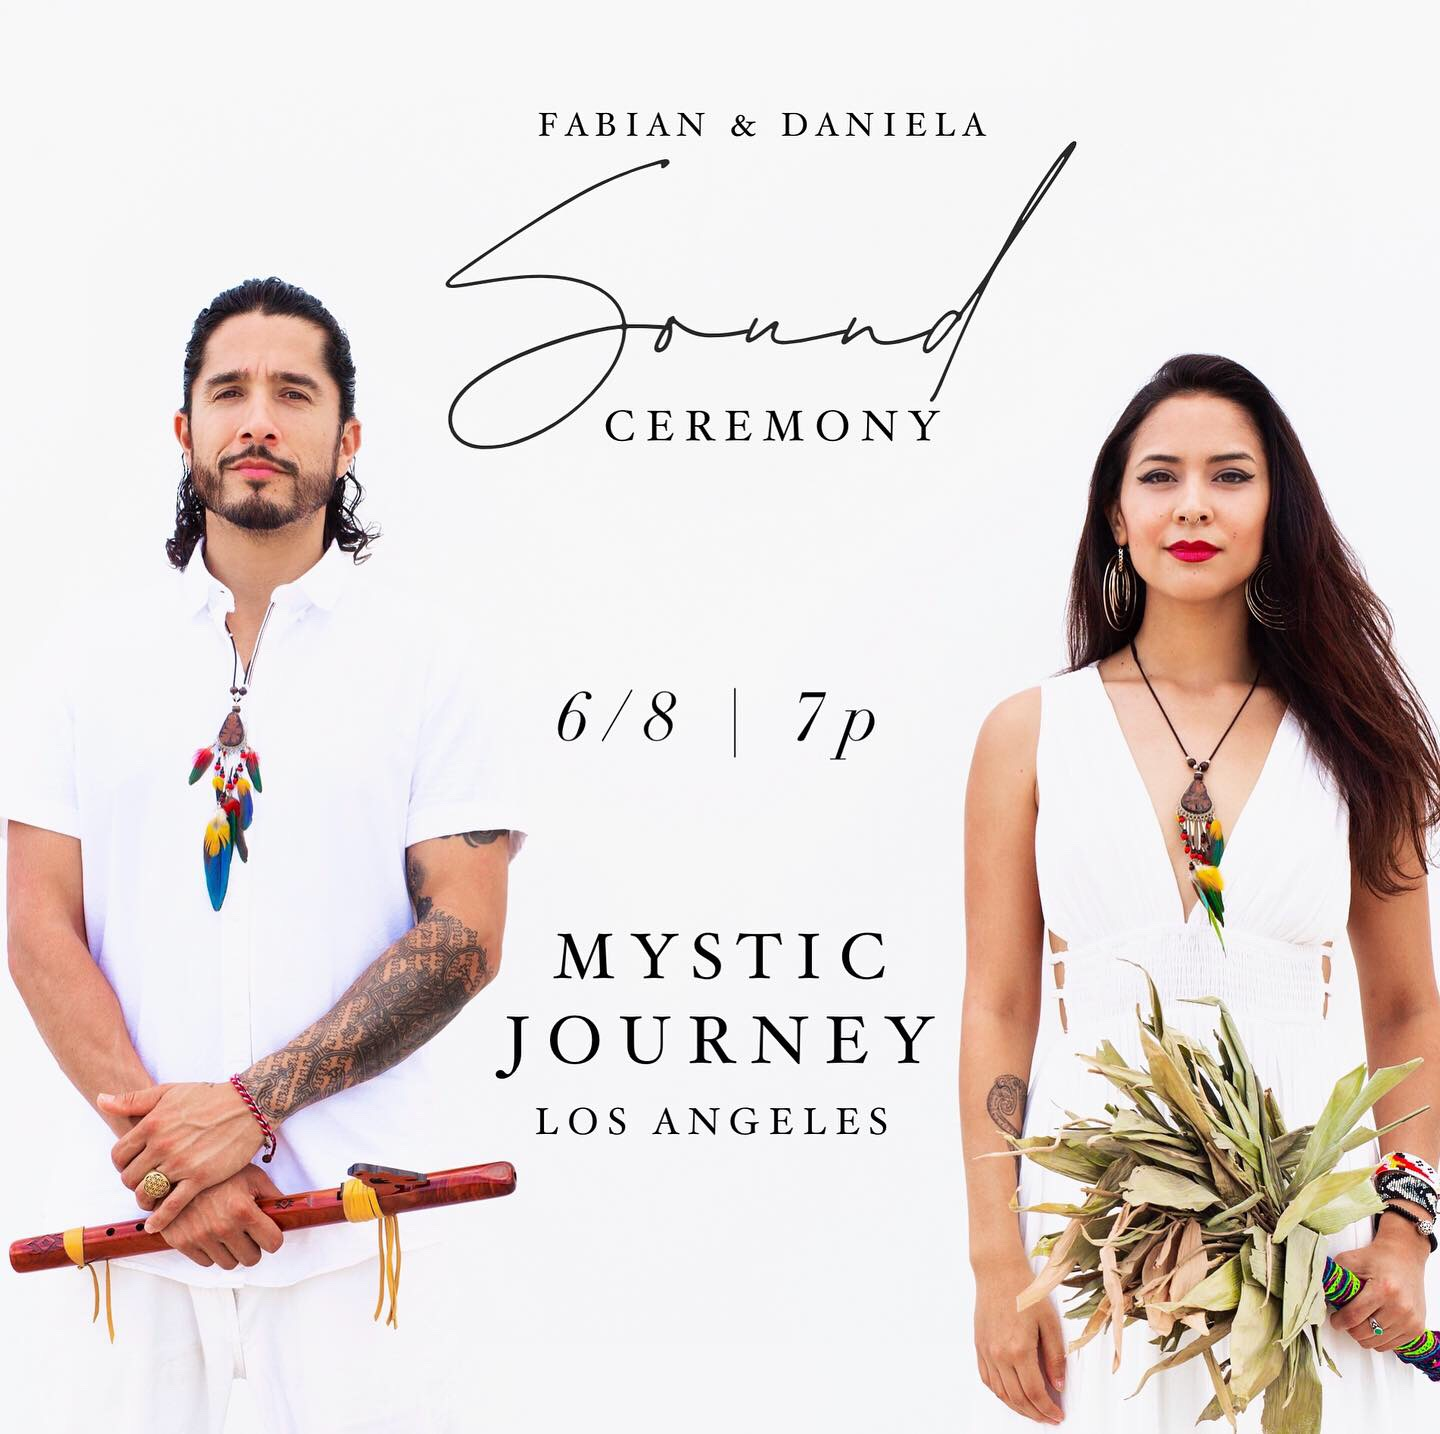 Mystic Journey Flyer.JPG